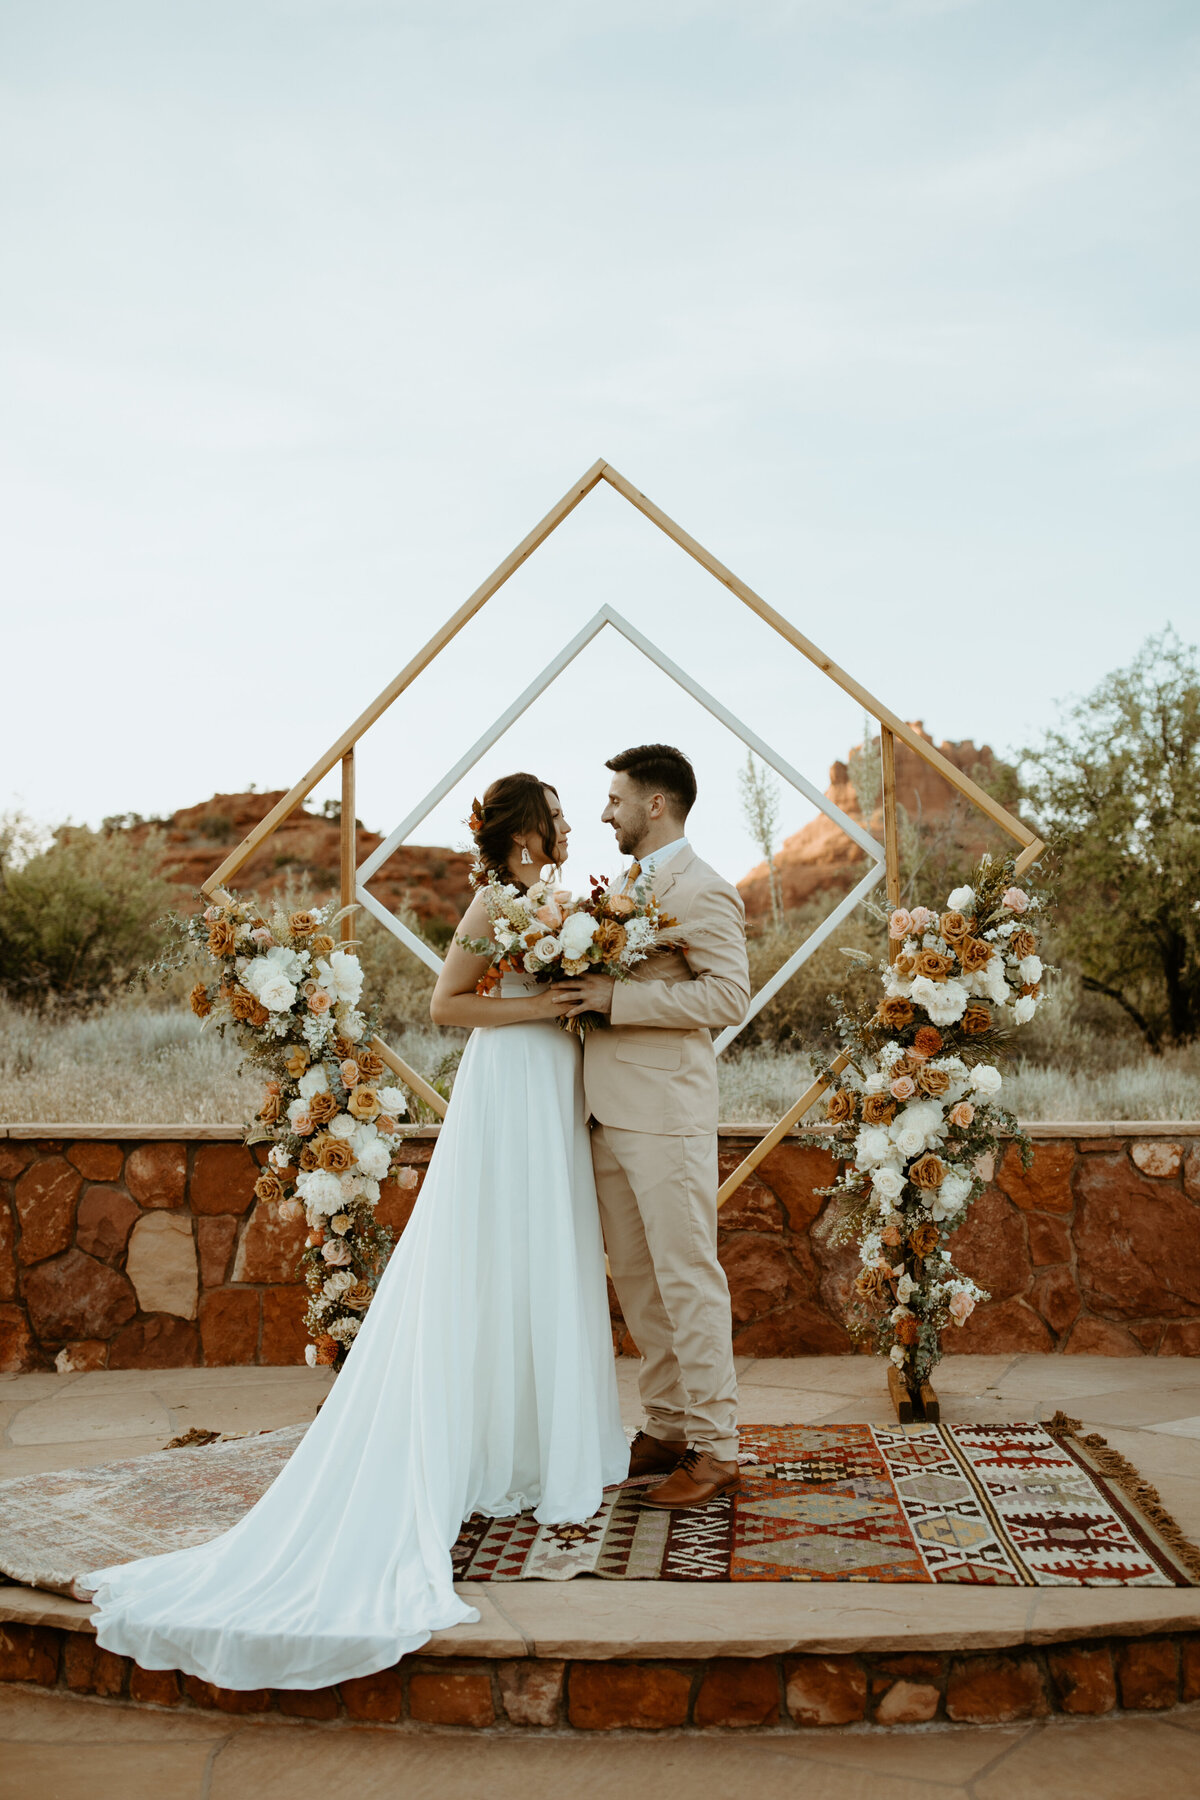 Sedona-Elopement-Photogrpaher-Summer-Grace-37